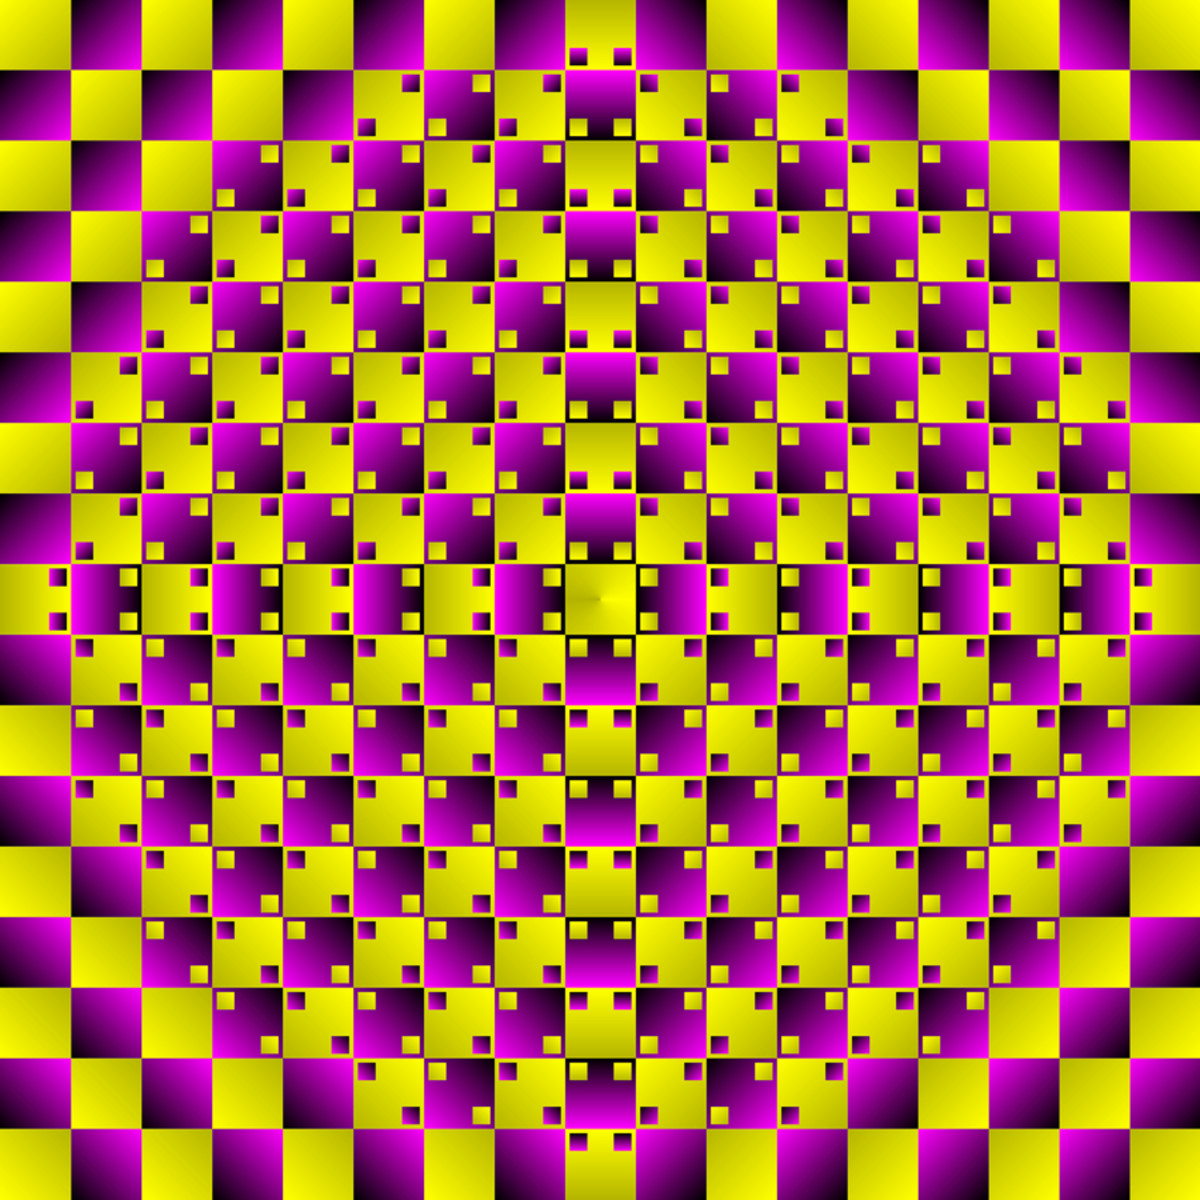 Illusion picture to display self designing web tools.